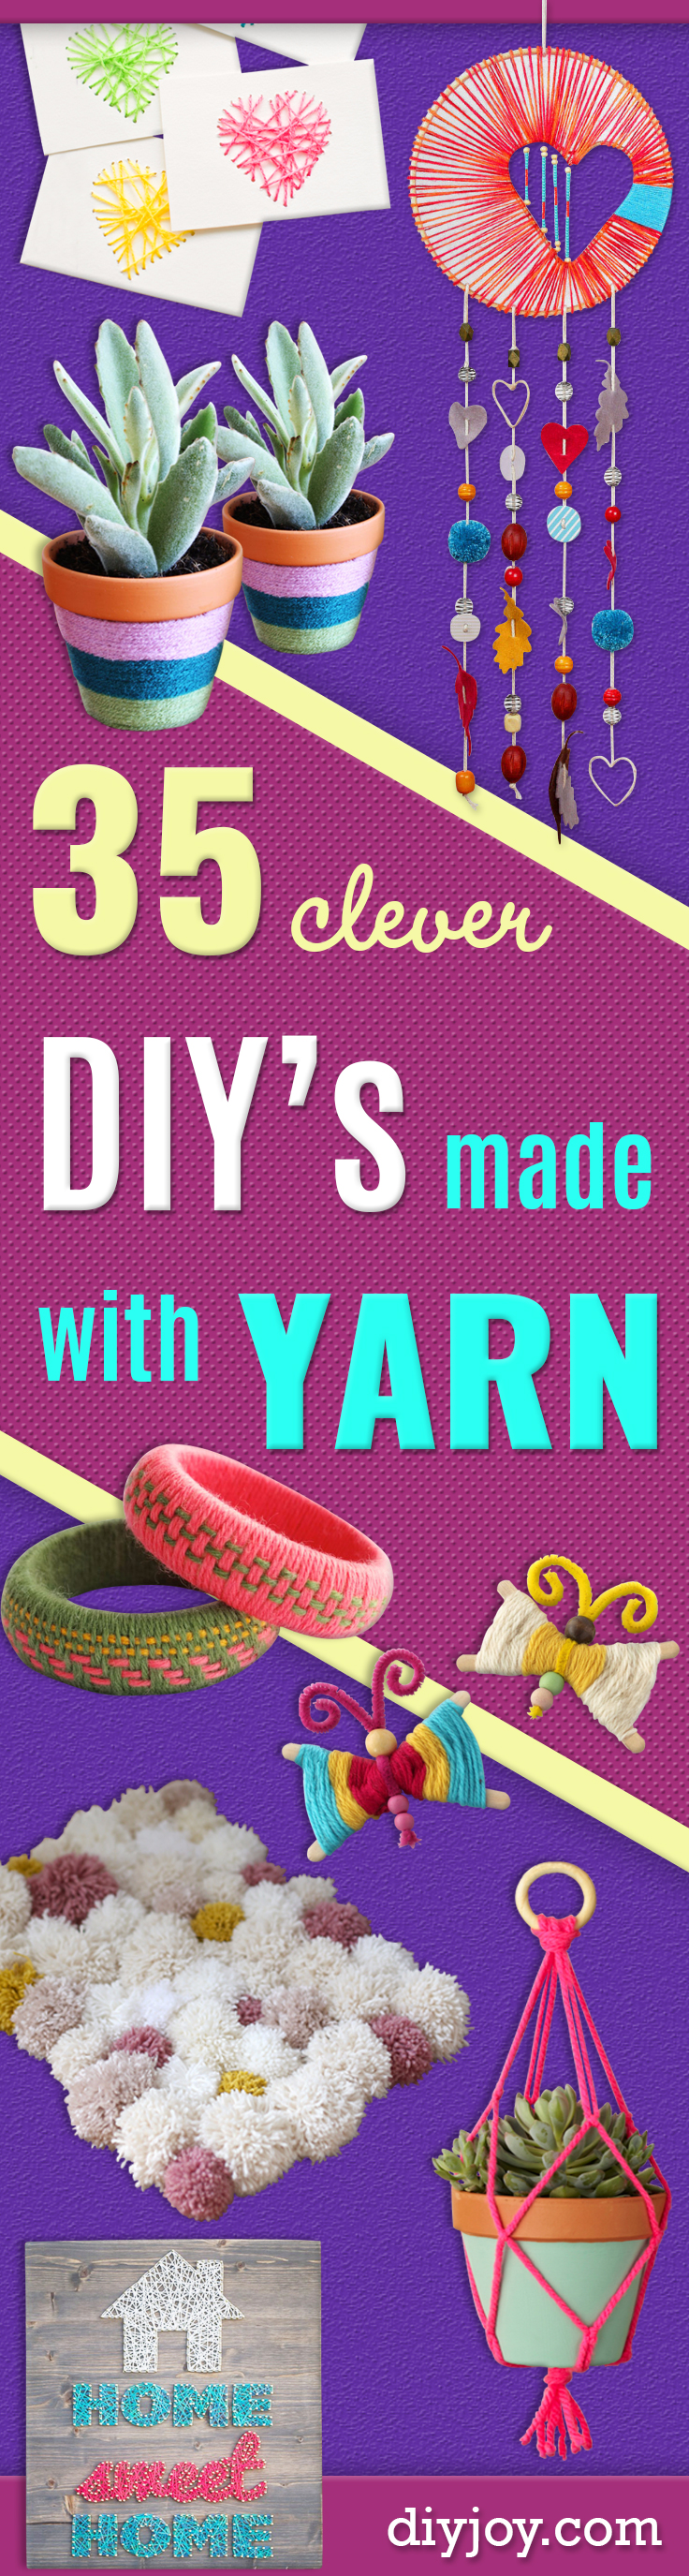 Clever DIY Crafts Made With Yarn - Yarn Crafts To Try, Easy Yarn DIYs, Fun Crafts To Do With Yarn, Wall Art, Awesome Yarn Ideas, Yarn DIY Projects, Brillian Yarn Craft Tutorials http://diyjoy.com/diy-yarn-crafts